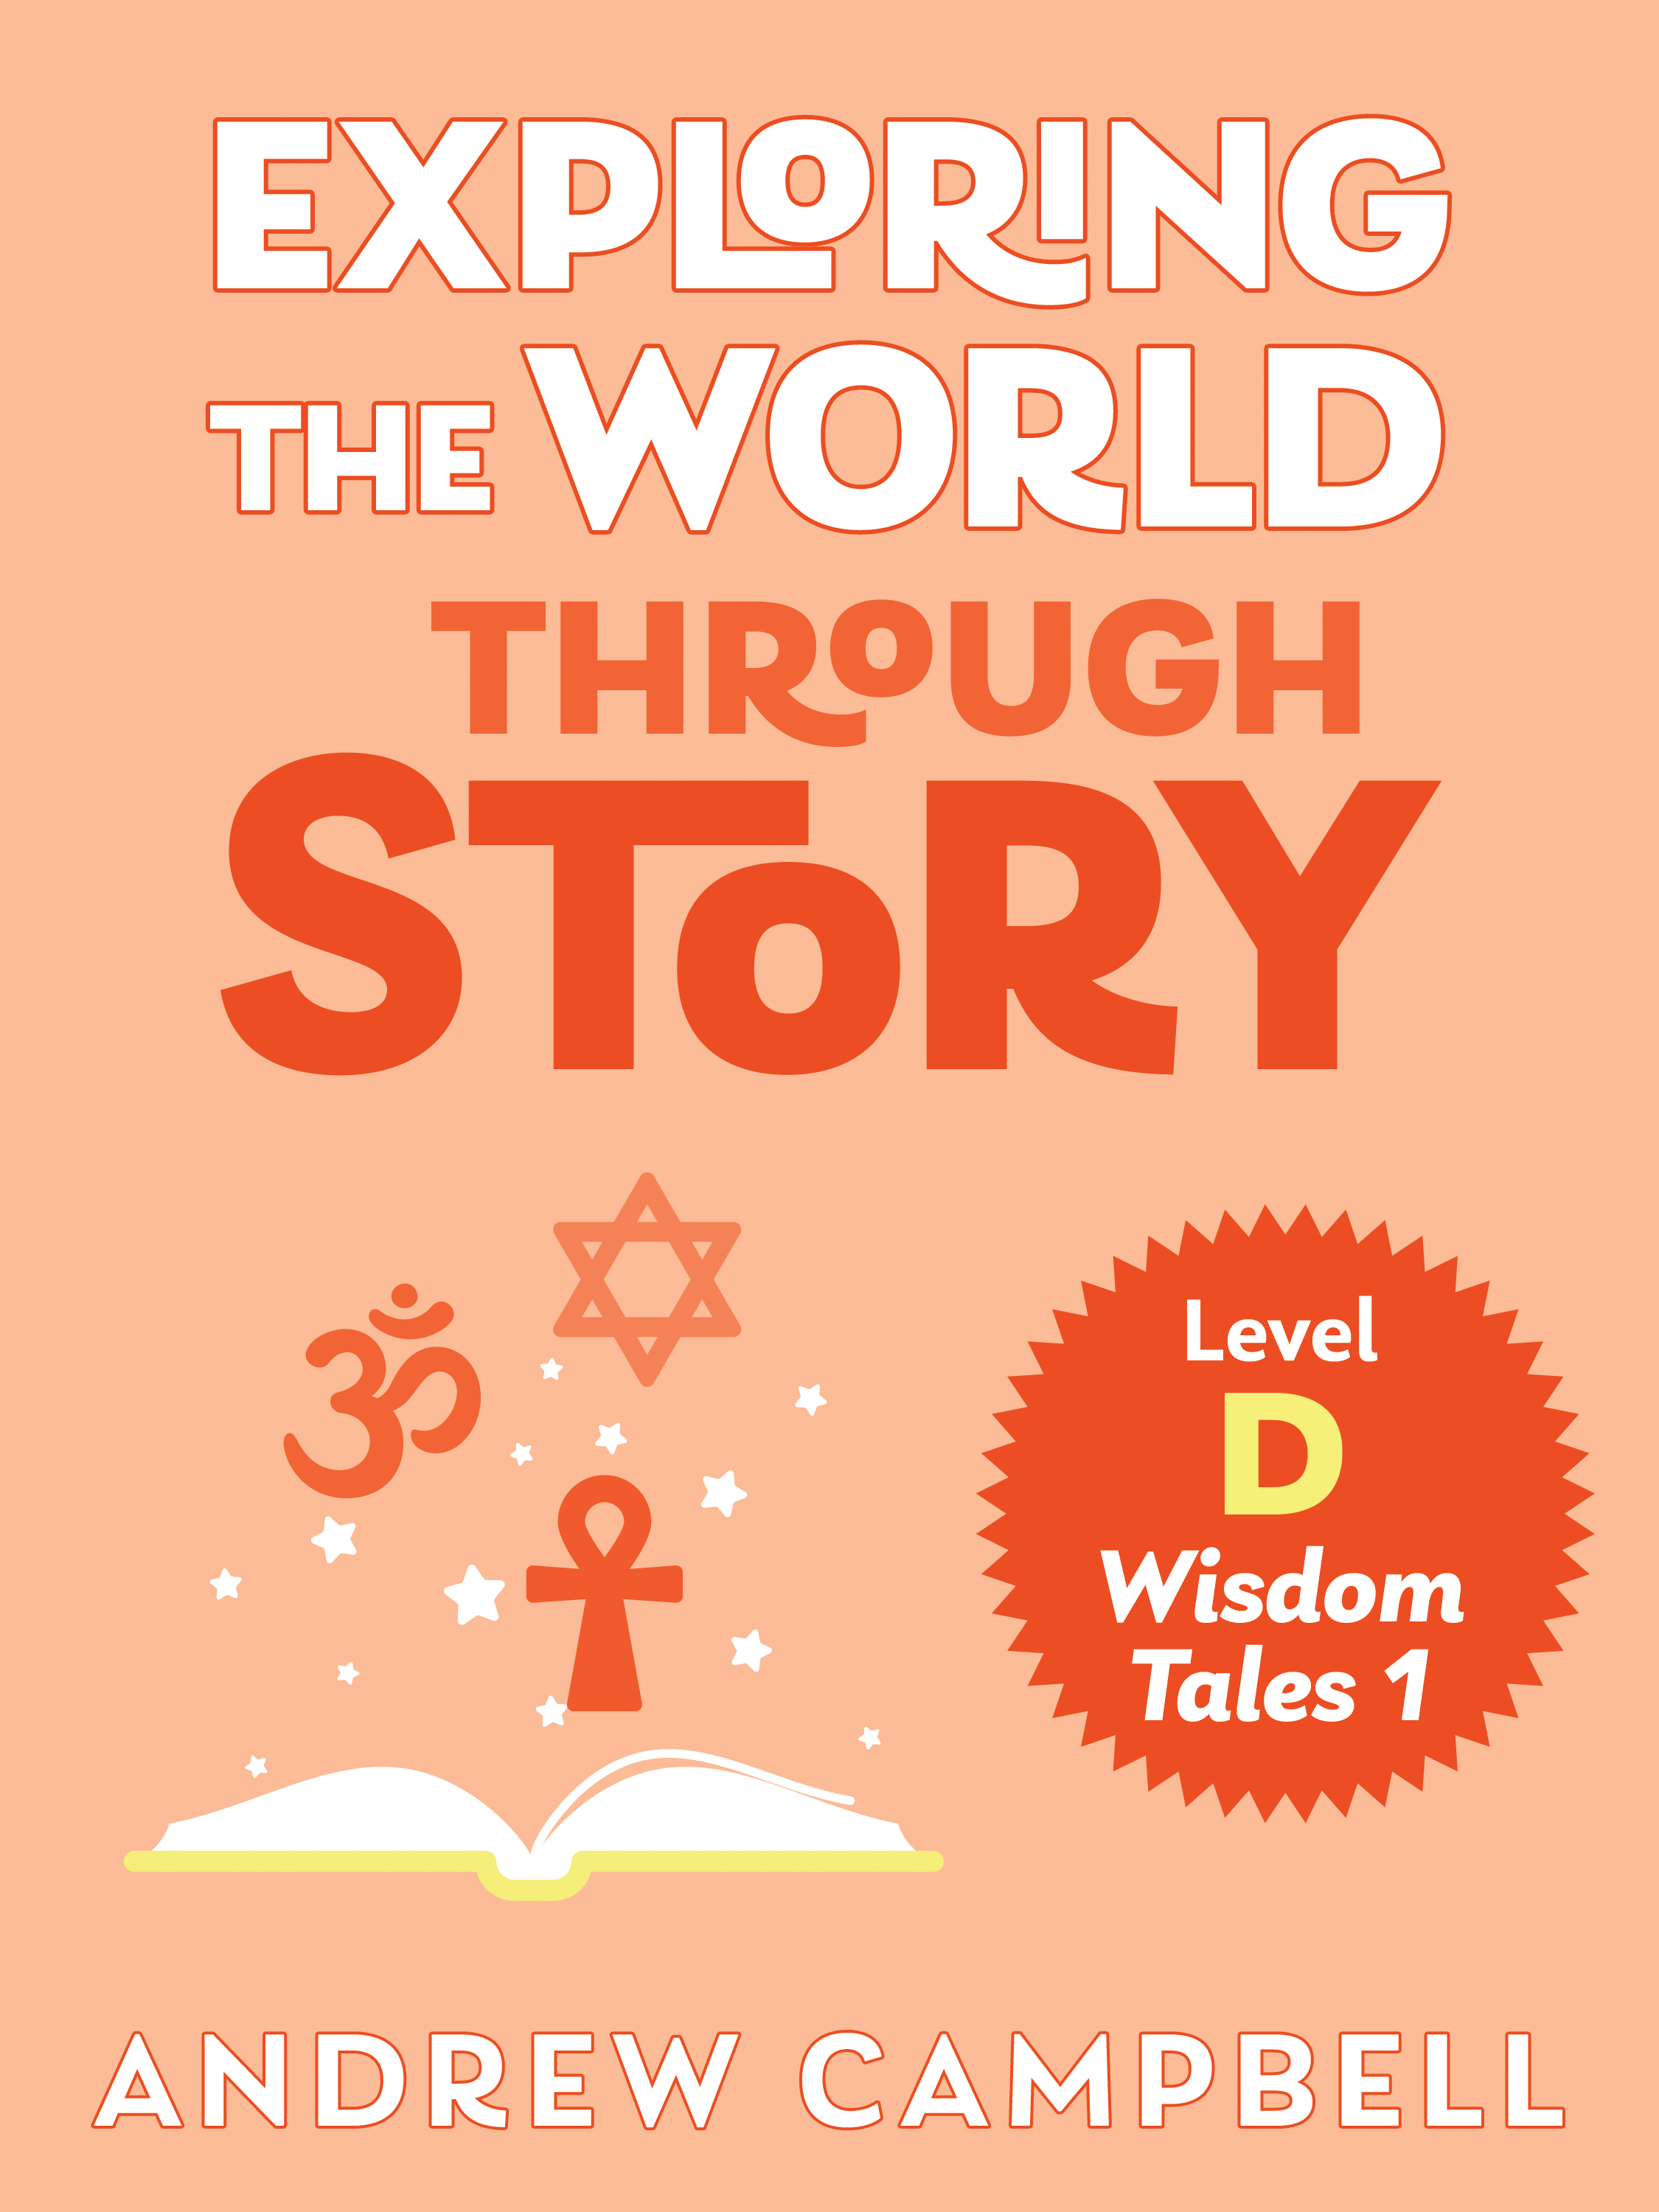 Exploring the World through Story, Level D